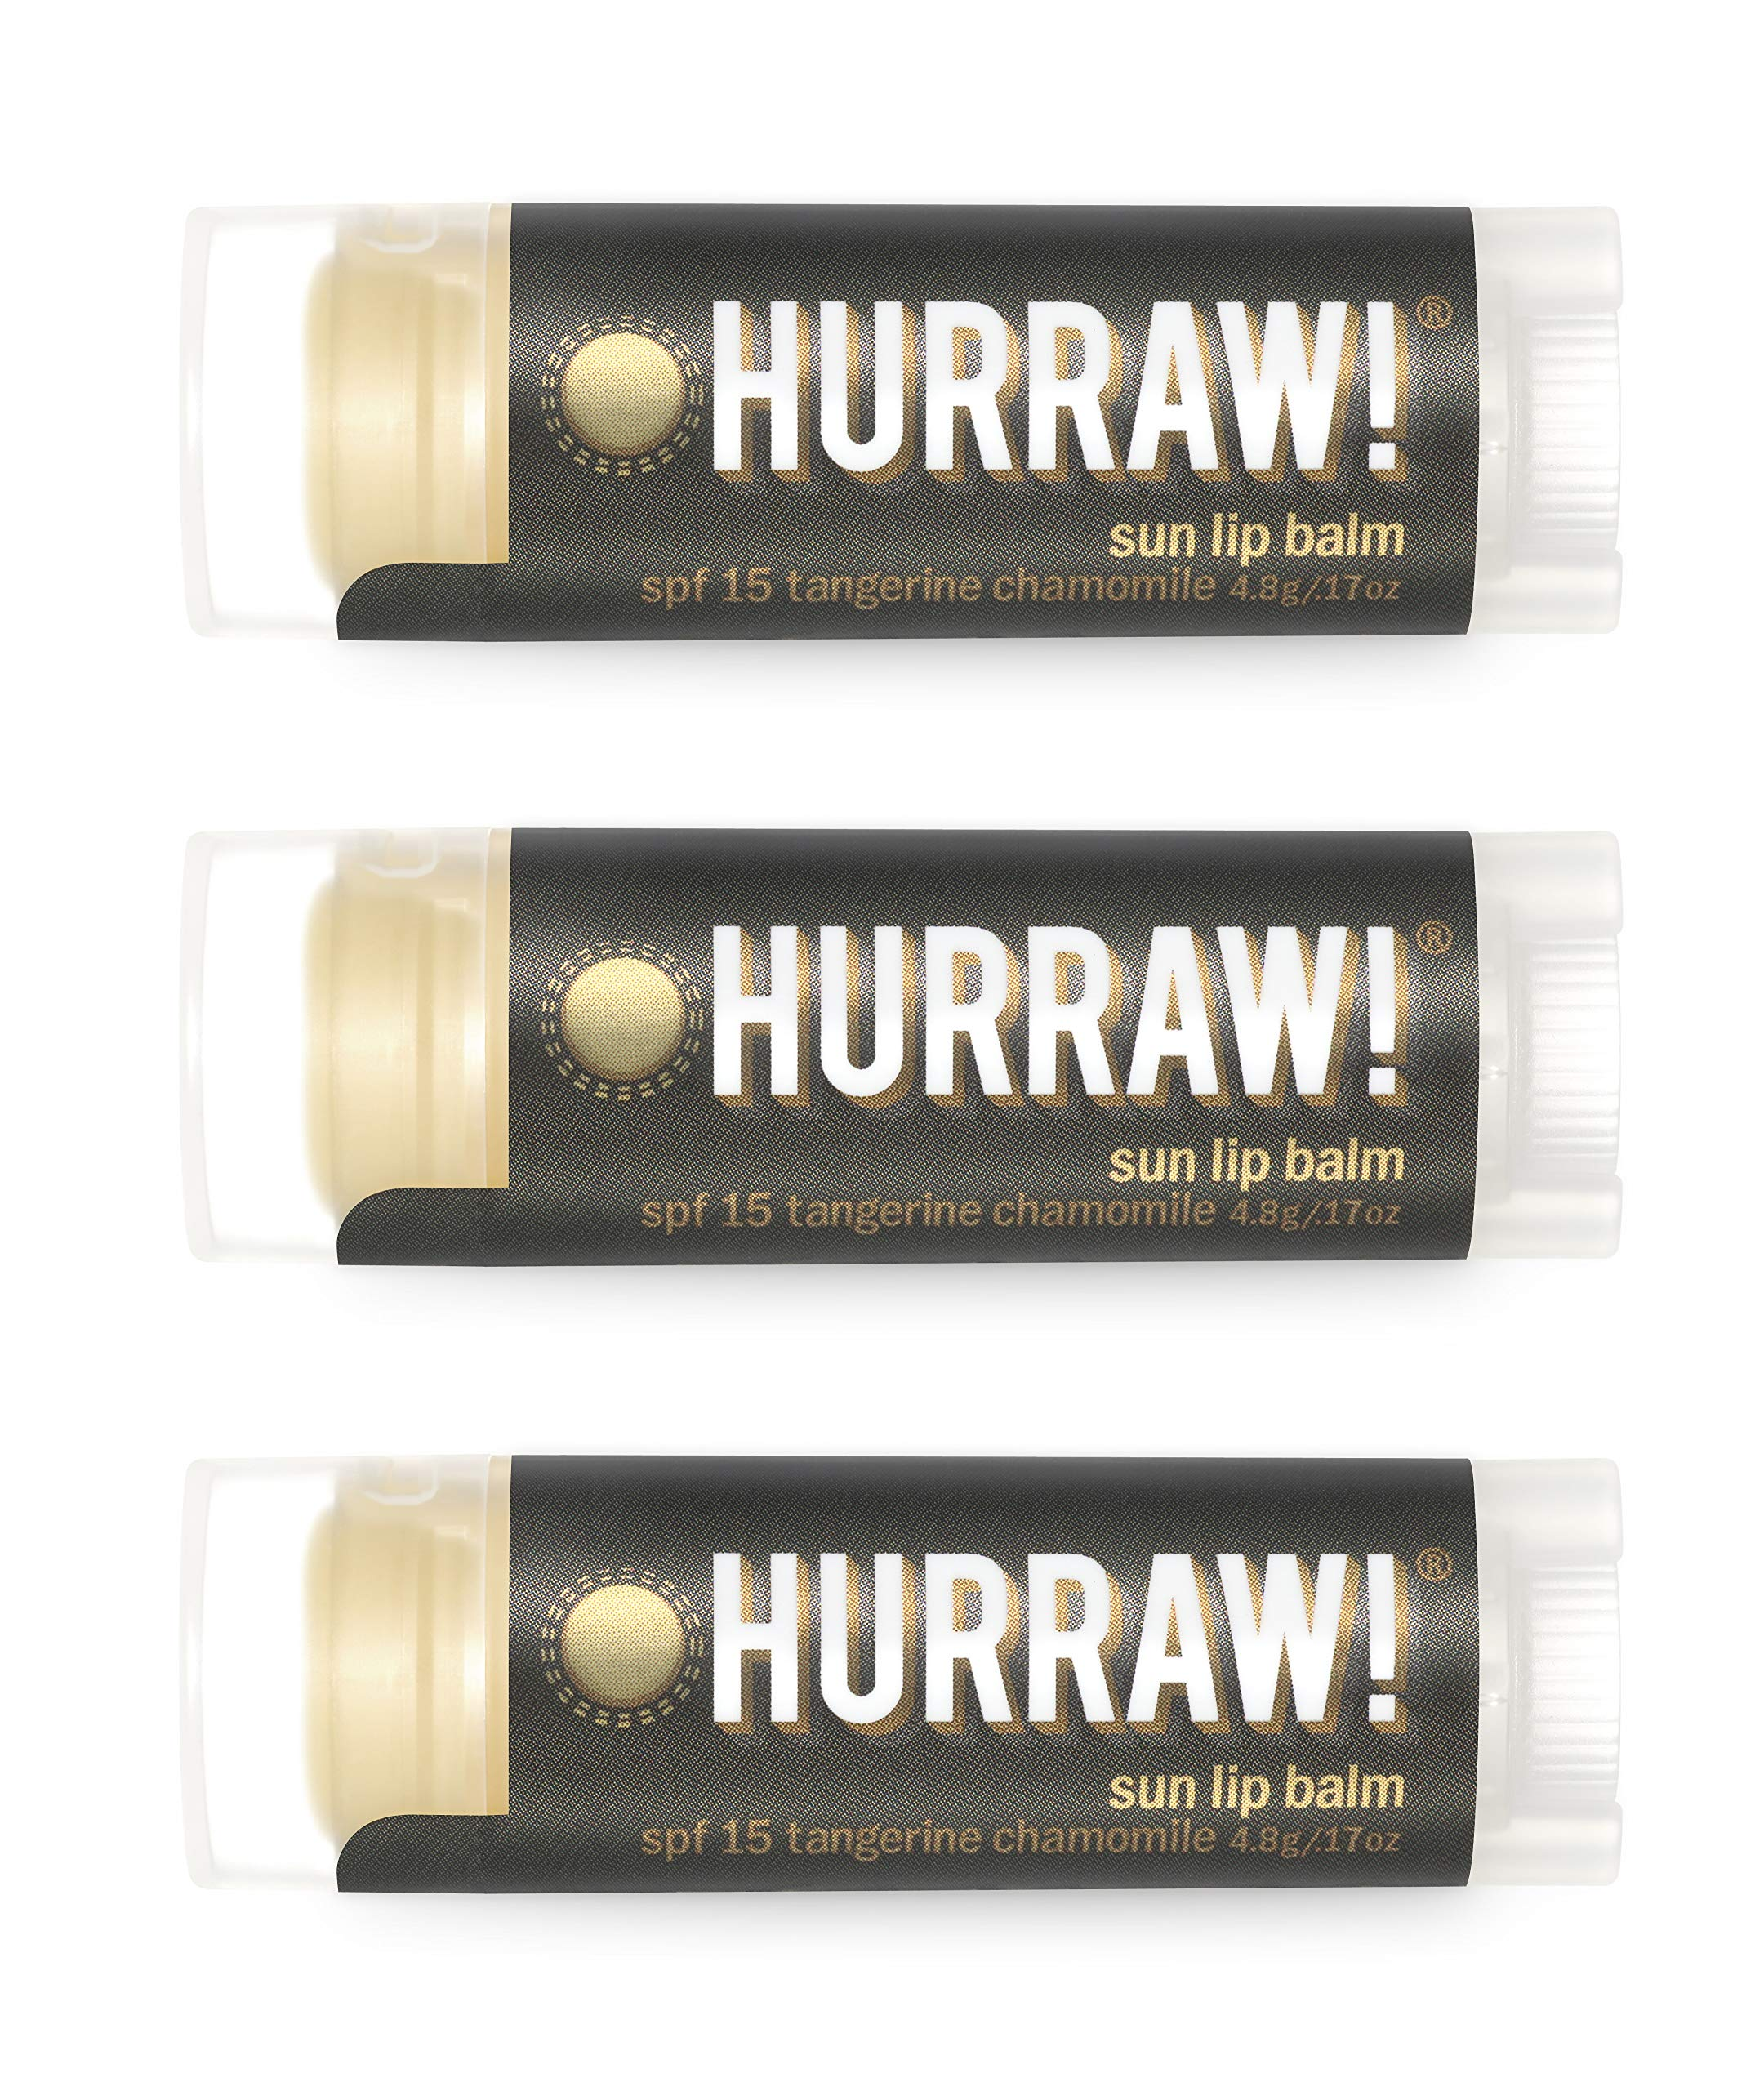 Hurraw Sun Protection (SPF 15, Tangerine, Chamomile) Lip Balm, 3 Pack – Organic, Certified Vegan, Cruelty and Gluten Free. Non-GMO, 100% Natural Ingredients. Bee, Shea, Soy and Palm Free. Made in USA